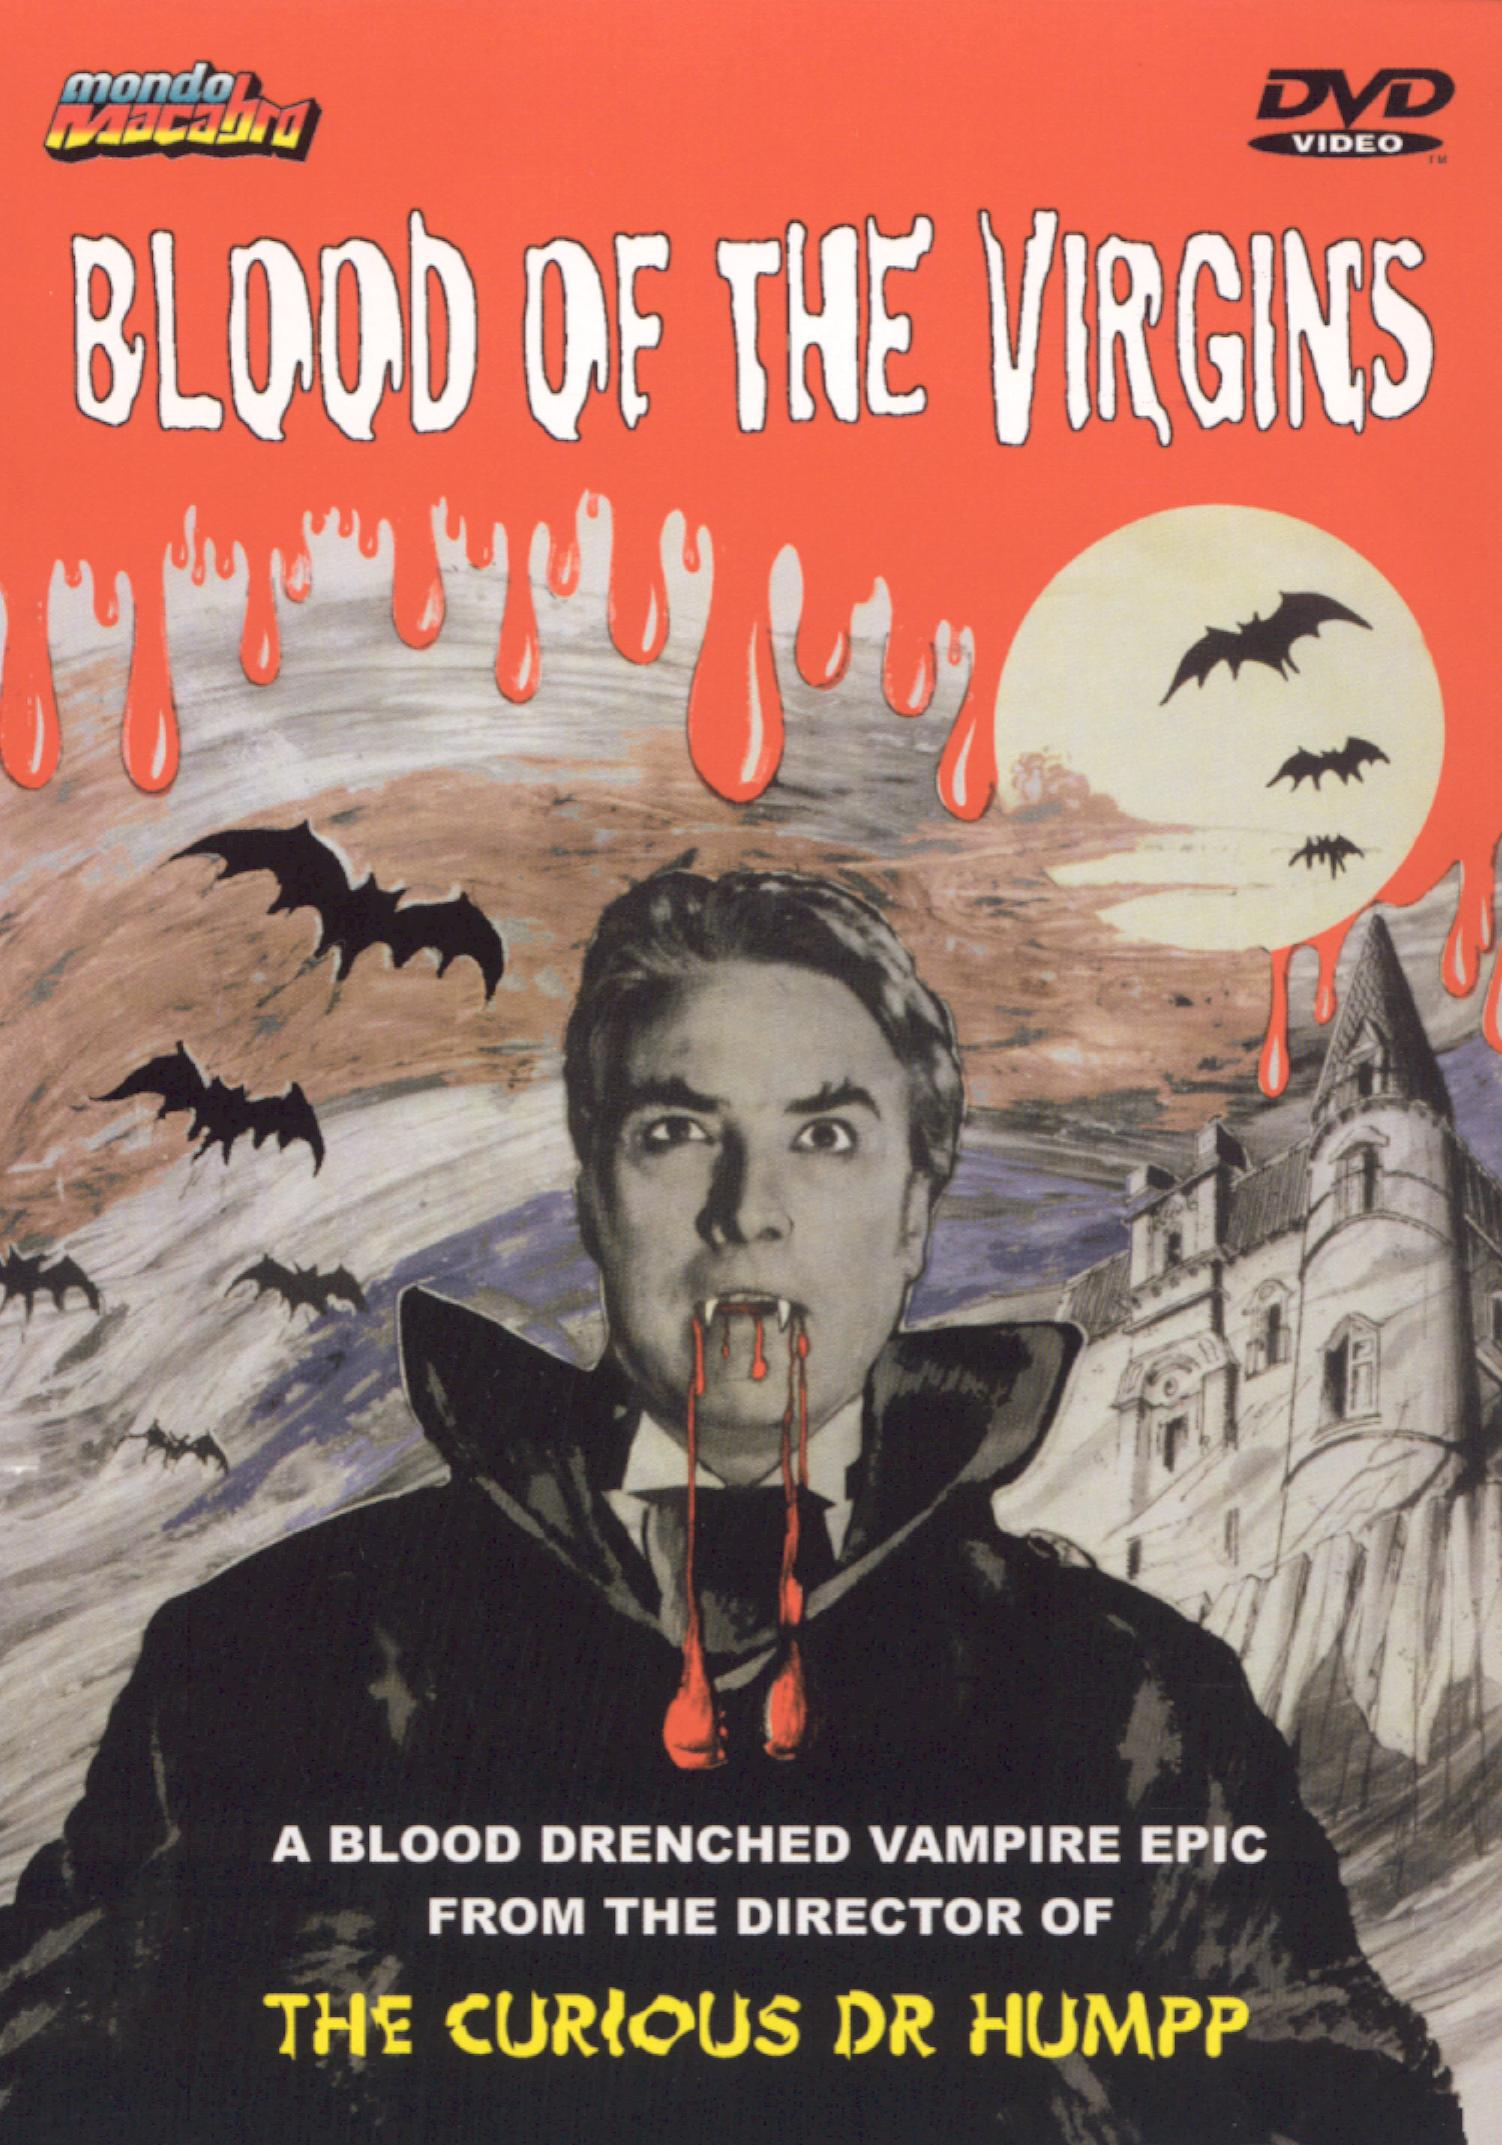 Blood of the Virgins